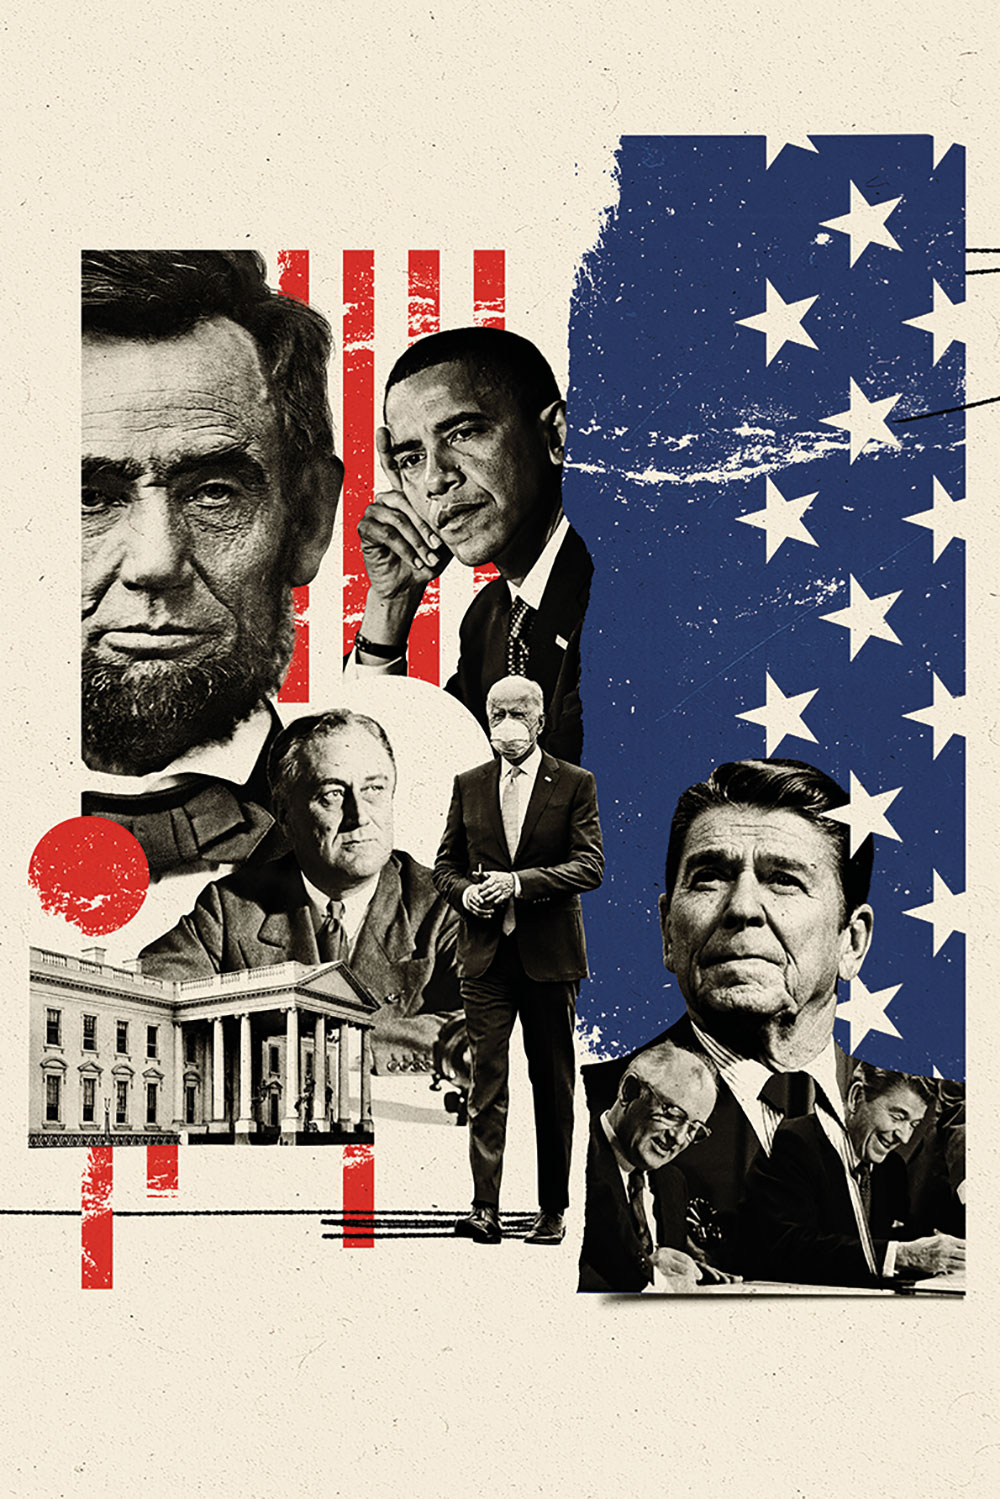 An illustration of Joe Biden and FDR alongside other troubled first-term U.S. presidents.